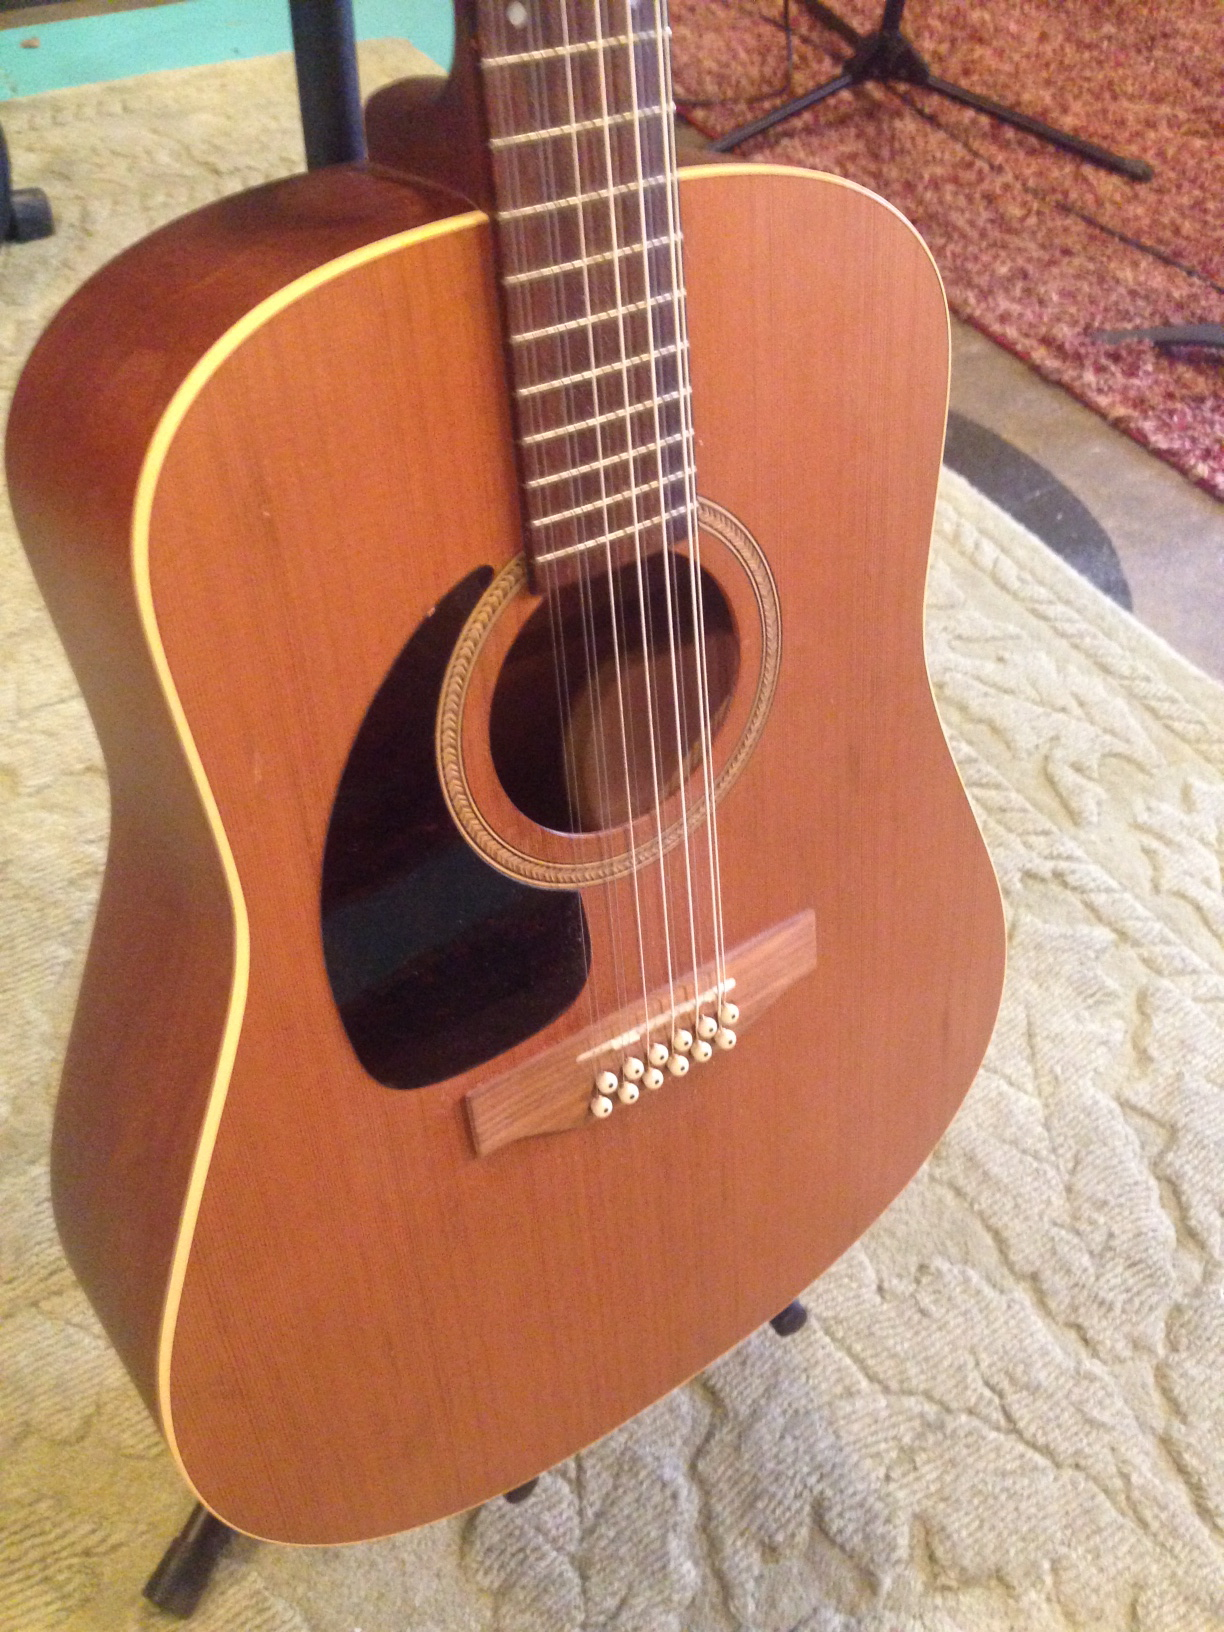 seagull lefty s12 12 string acoustic electric. Black Bedroom Furniture Sets. Home Design Ideas